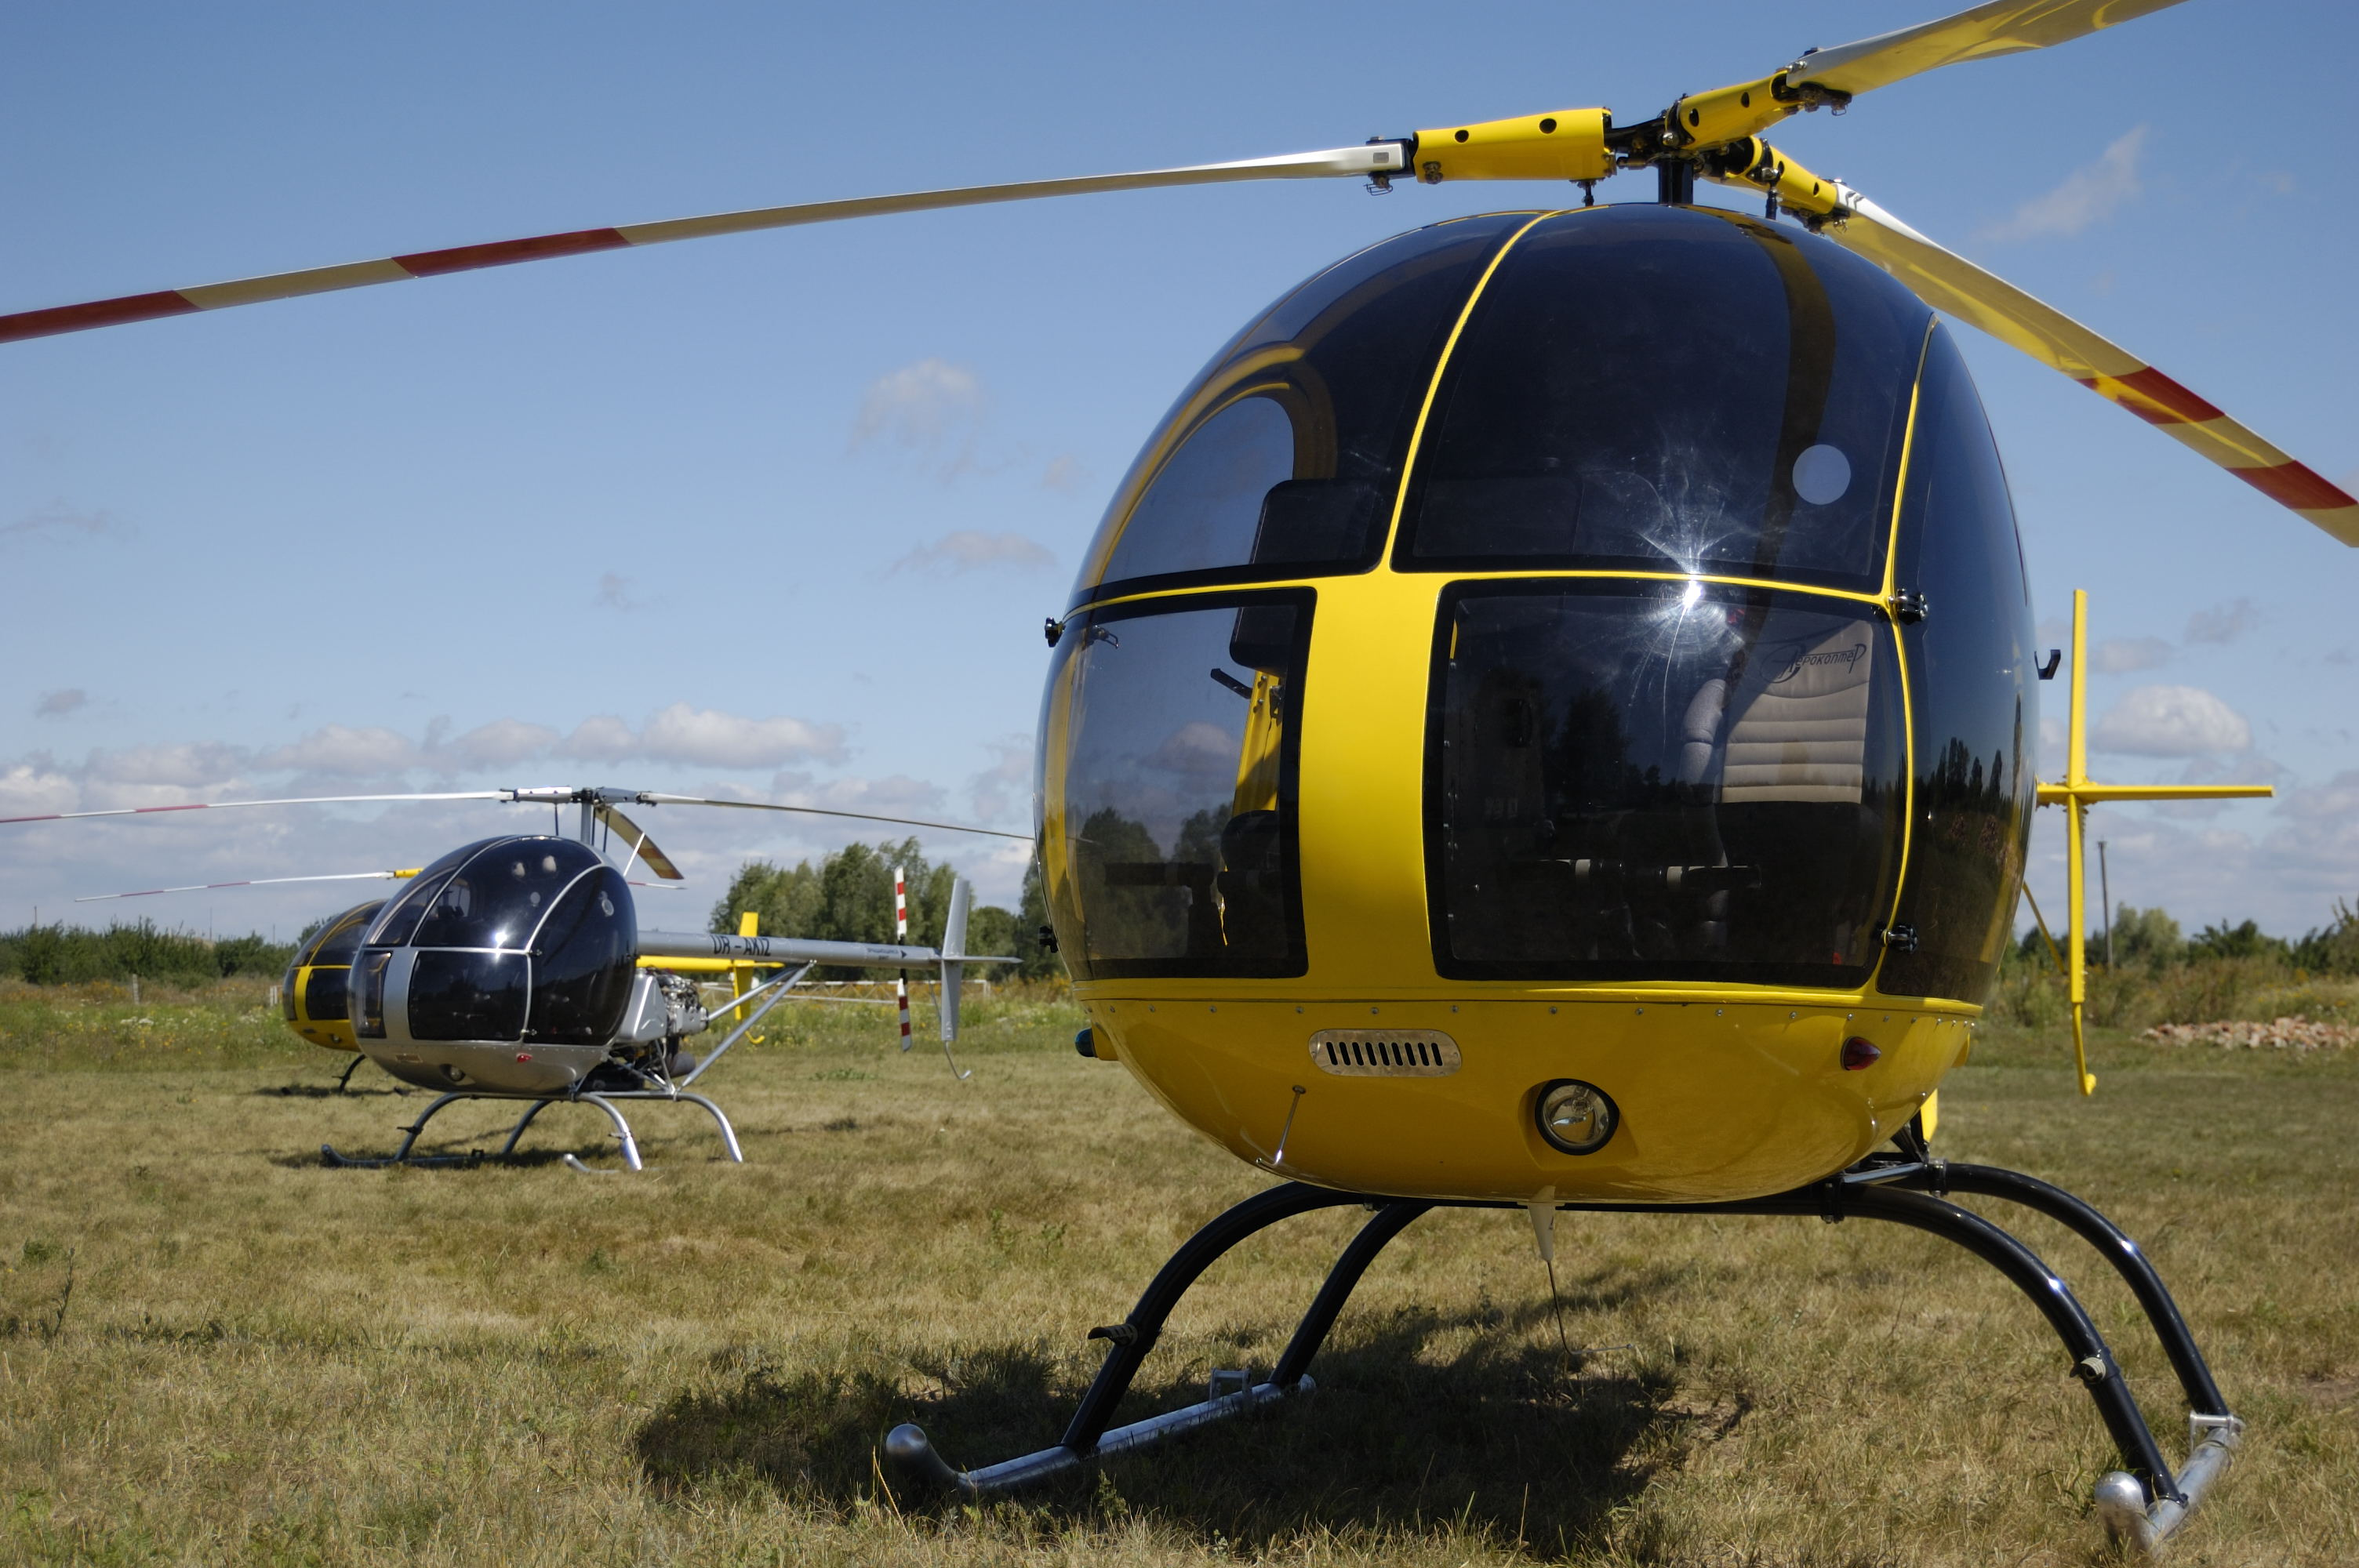 ak1 3 helicopter for sale used with Prweb2718944 on Prweb2718944 moreover Kermitt 2 in addition RussianhelicopterAK2 together with Kermitt 2 together with Drone uav uas rental leasing.